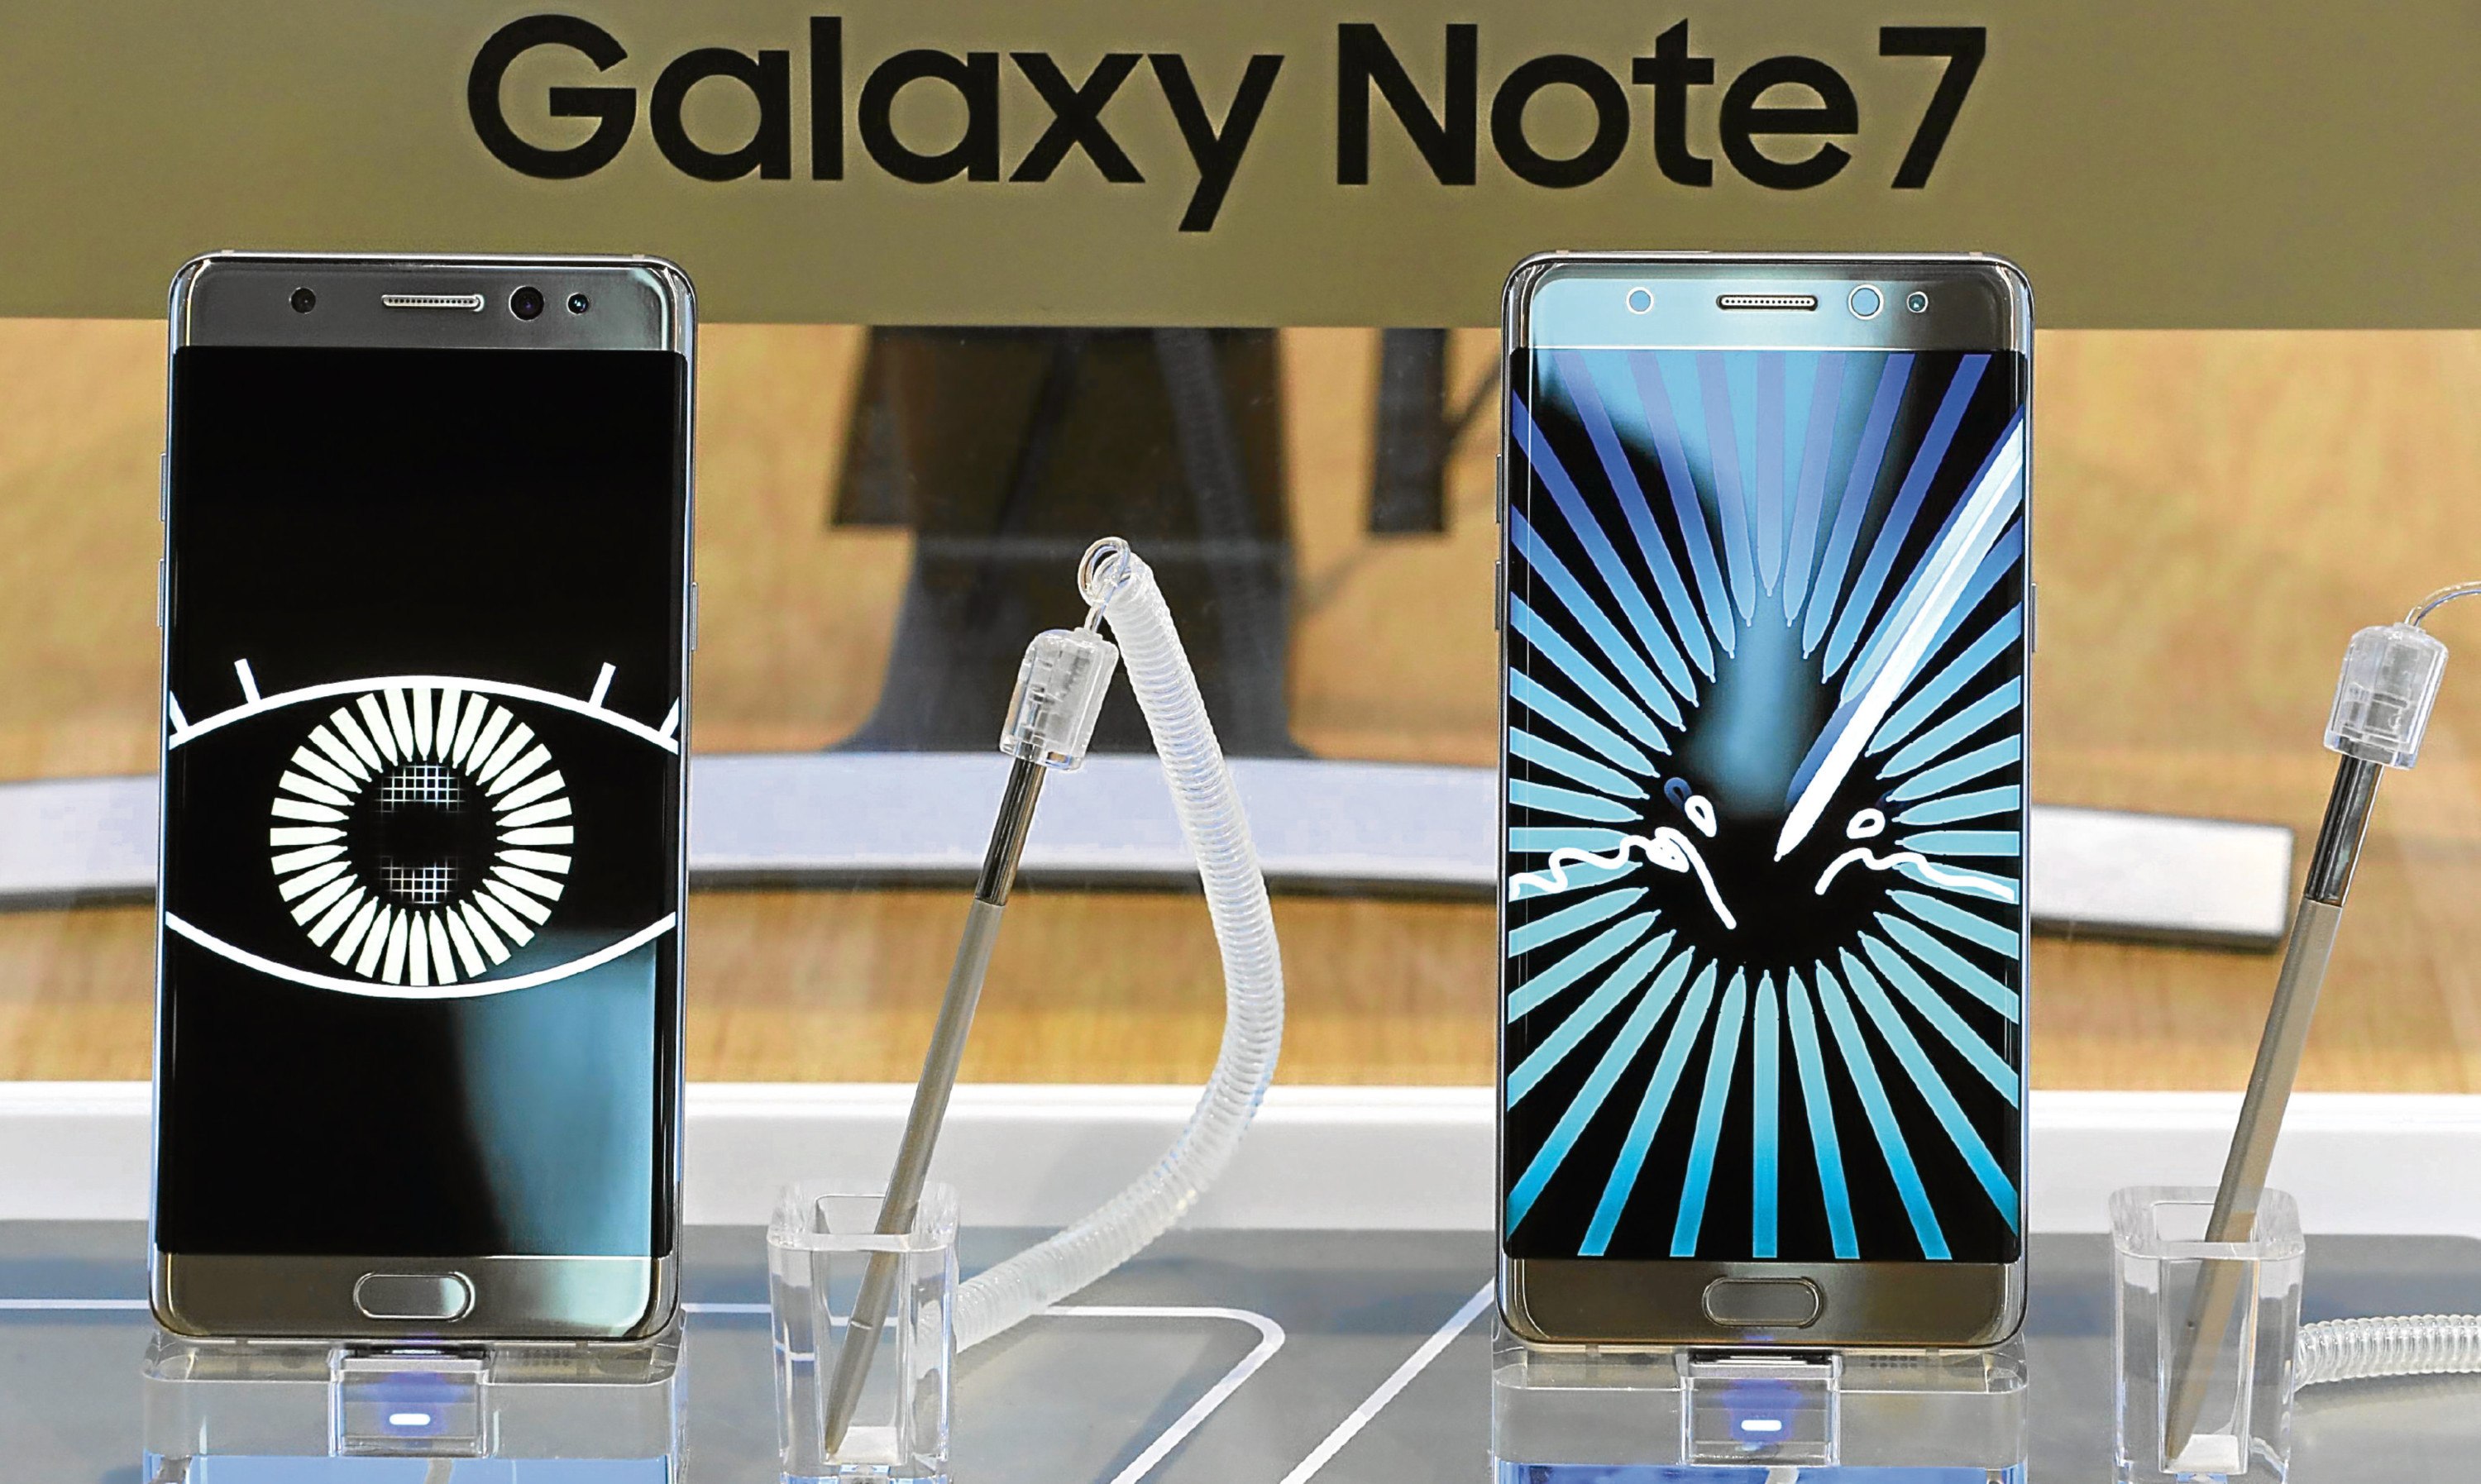 Samsung Electronics Galaxy Note 7 smartphones are displayed at its shop.